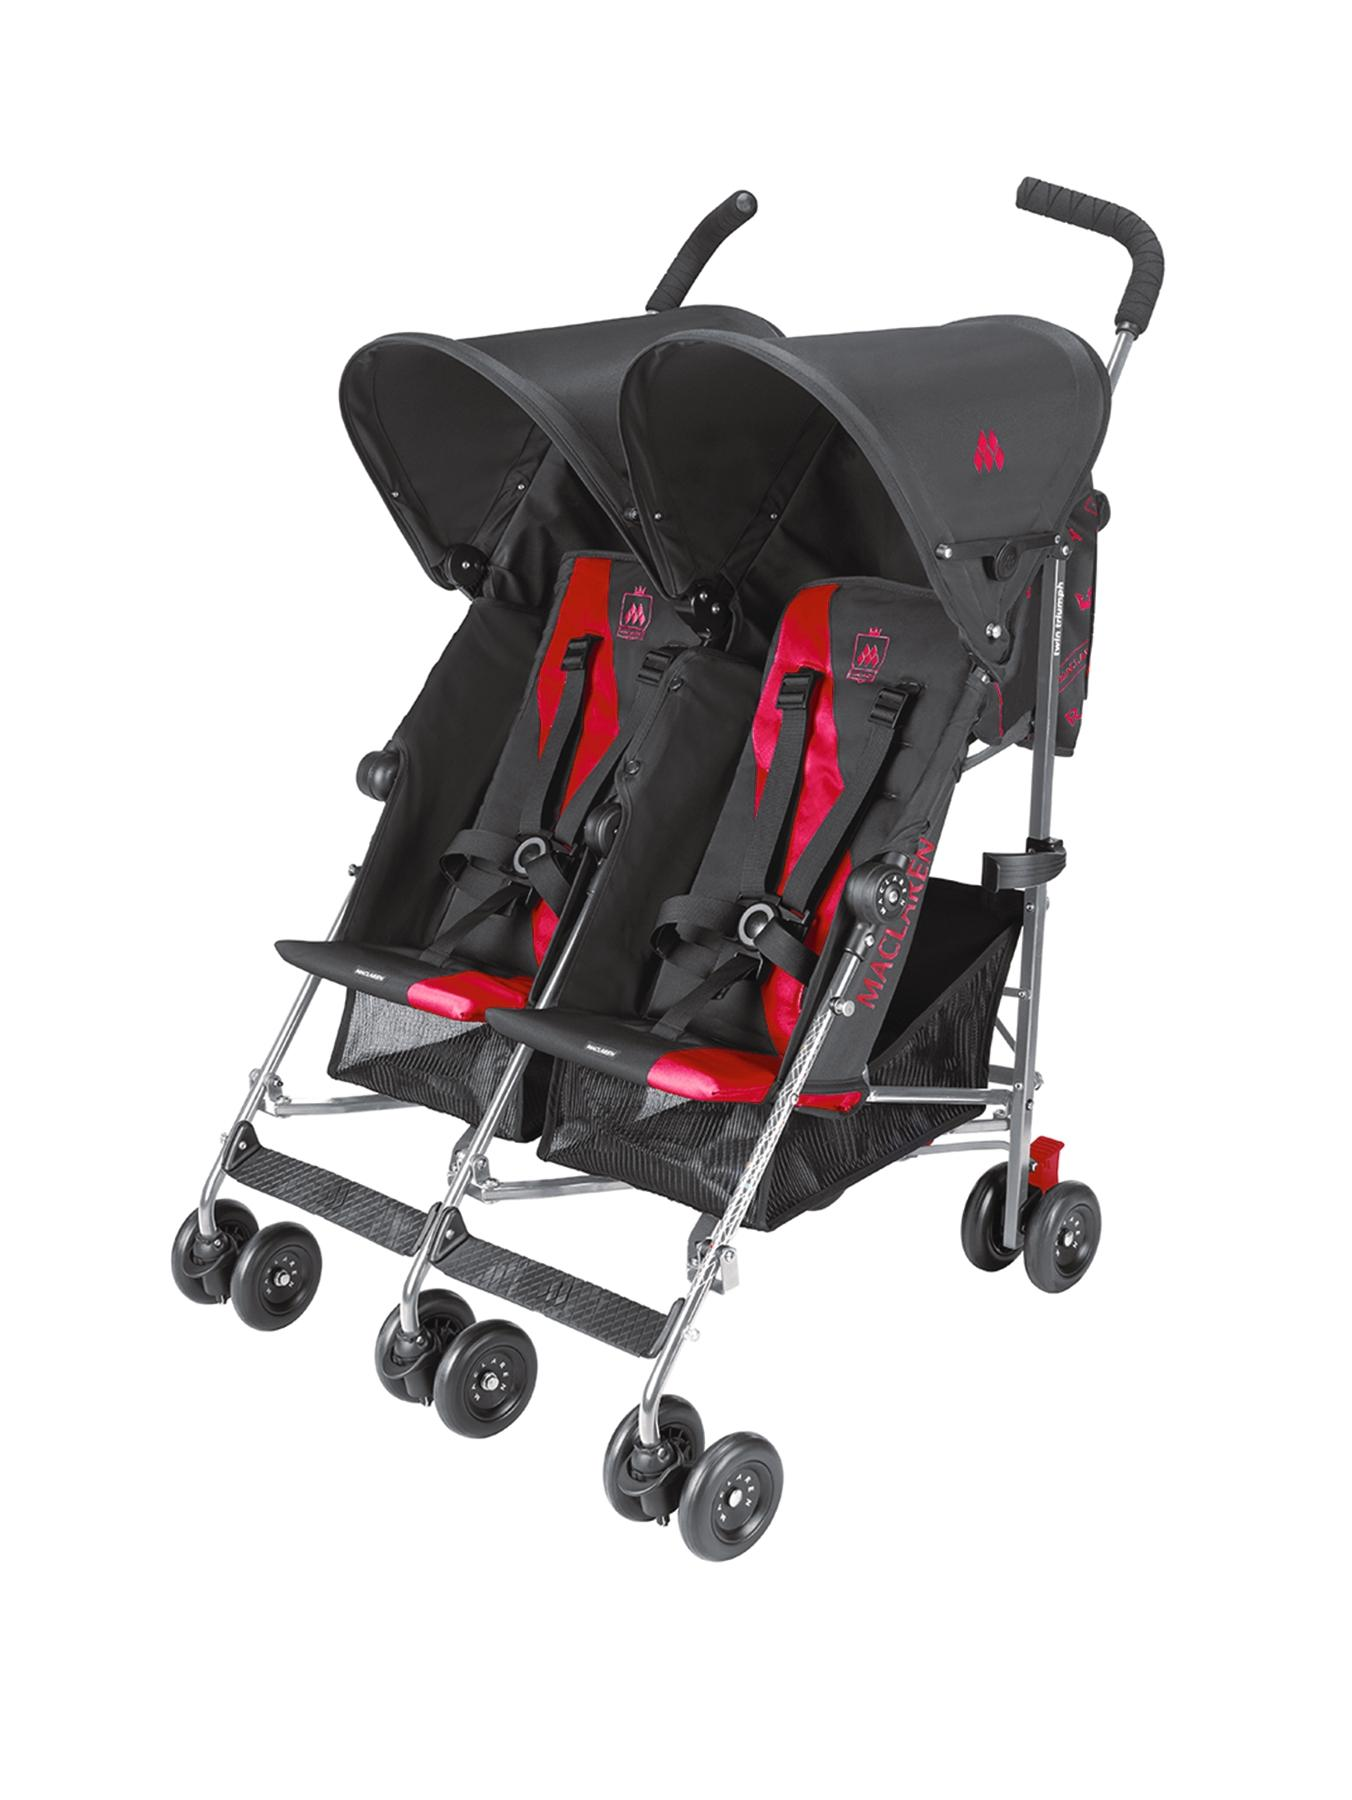 Twin Triumph Buggy, Black,Charcoal